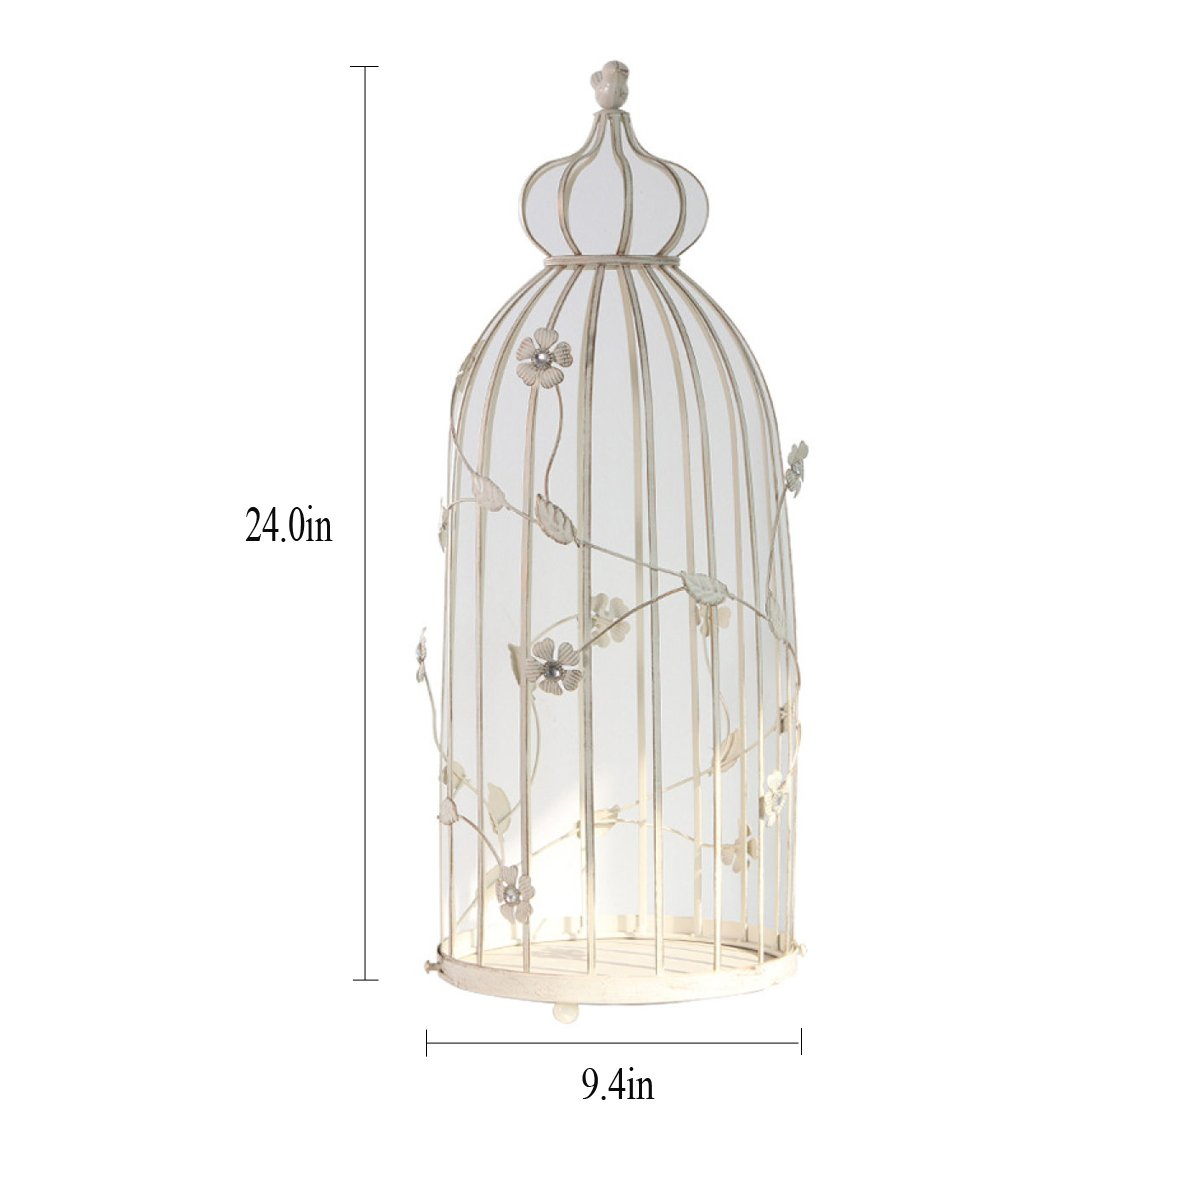 L;IAN Flower Pot Rack cage Bird Iron Candlestick Flower Stand Decoration Home Living Room Decorations Crafts